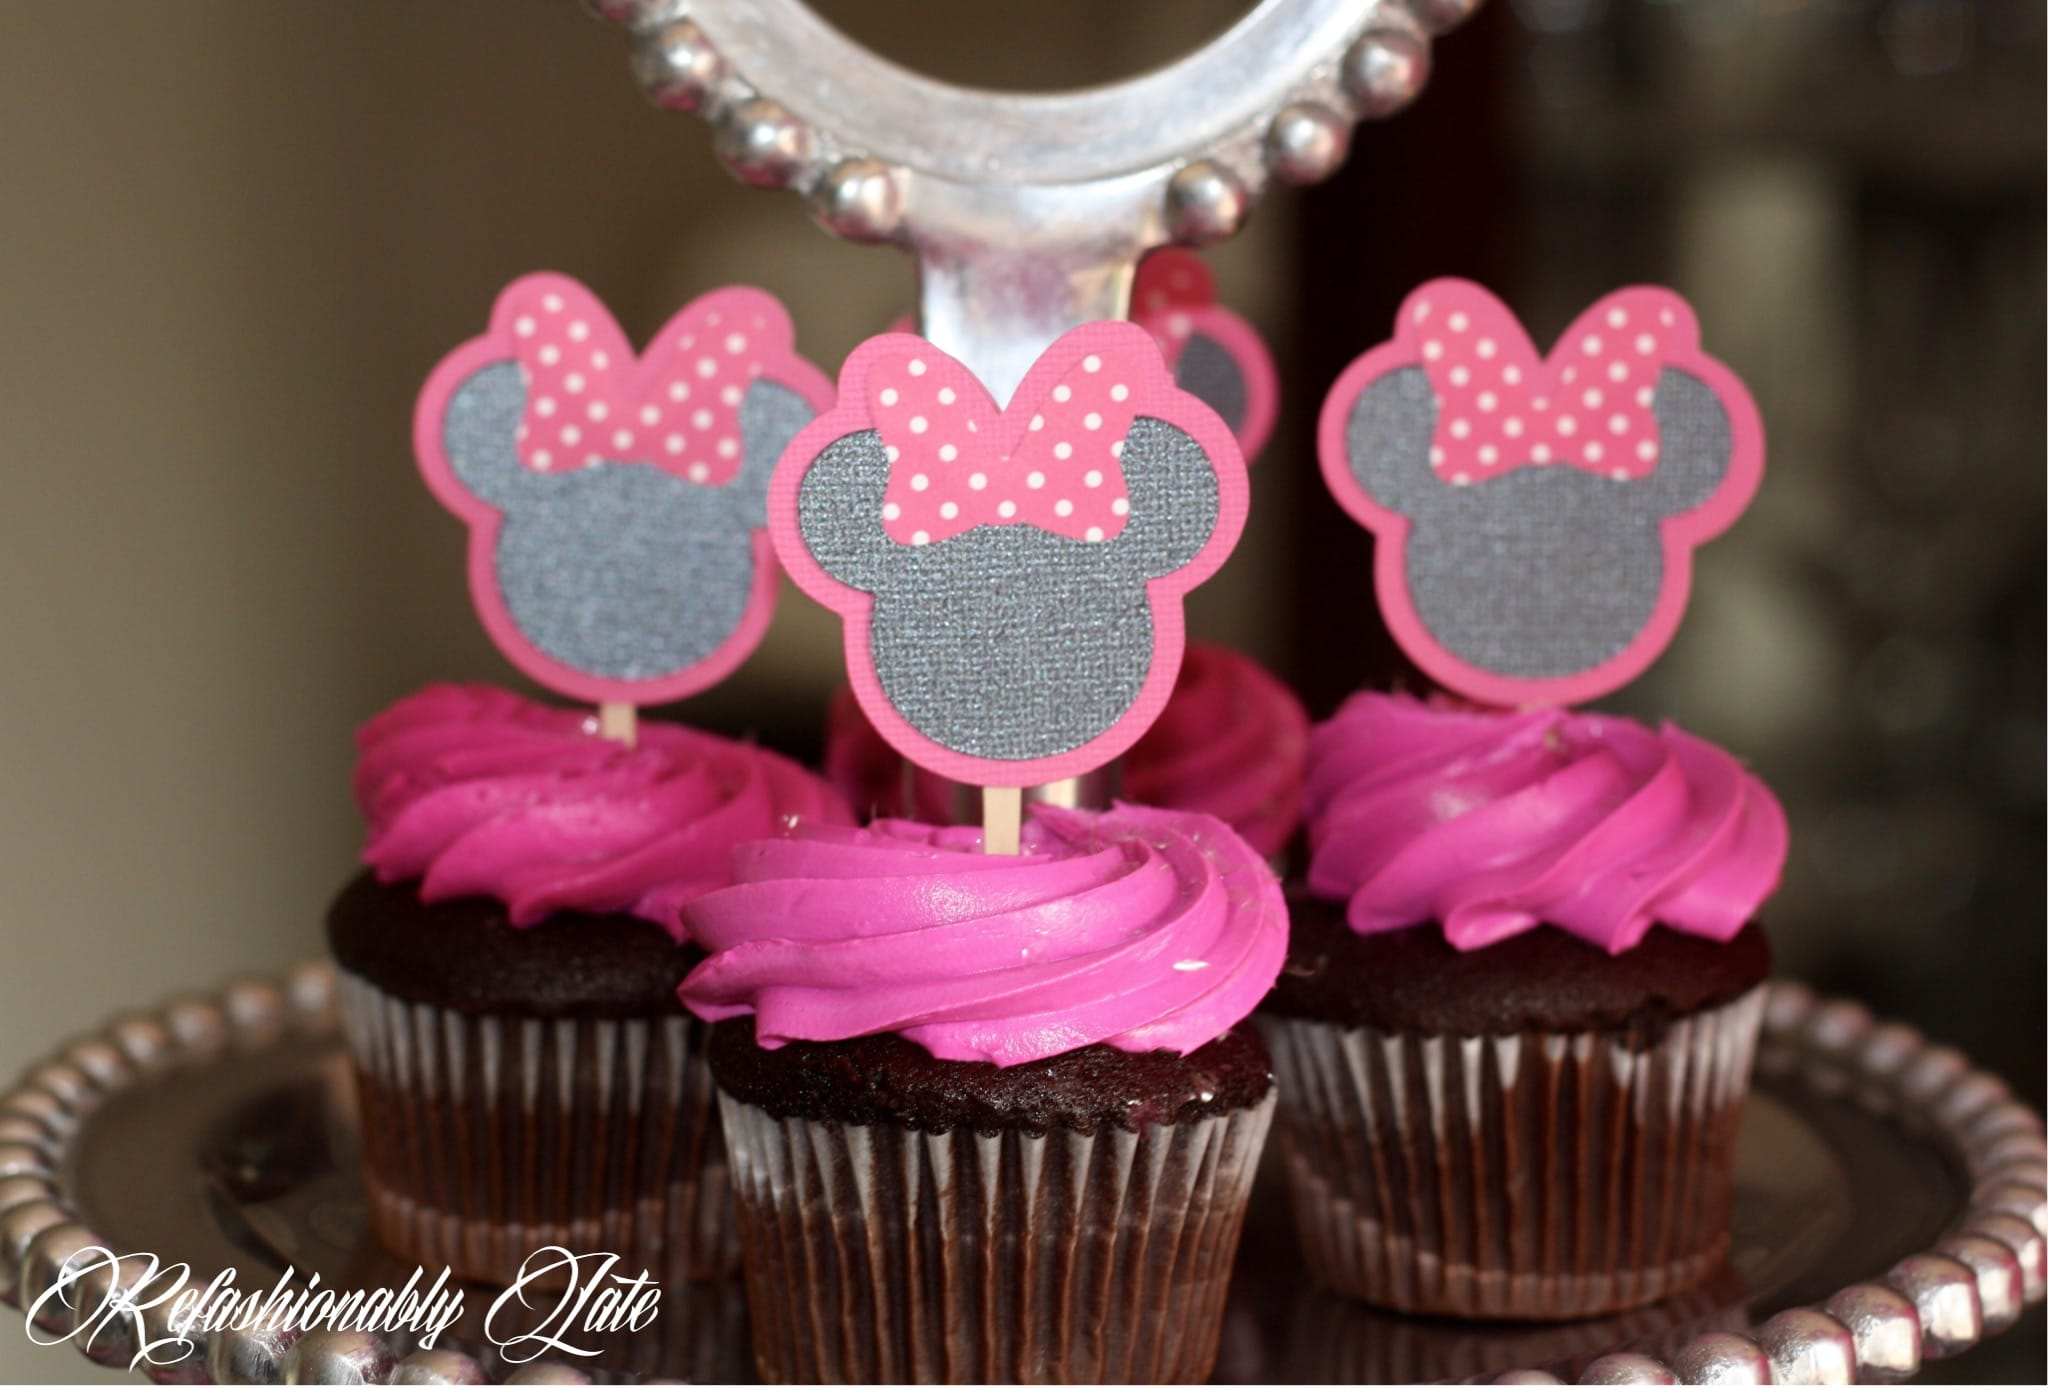 Minnie Mouse Birthday Party Refashionably Late